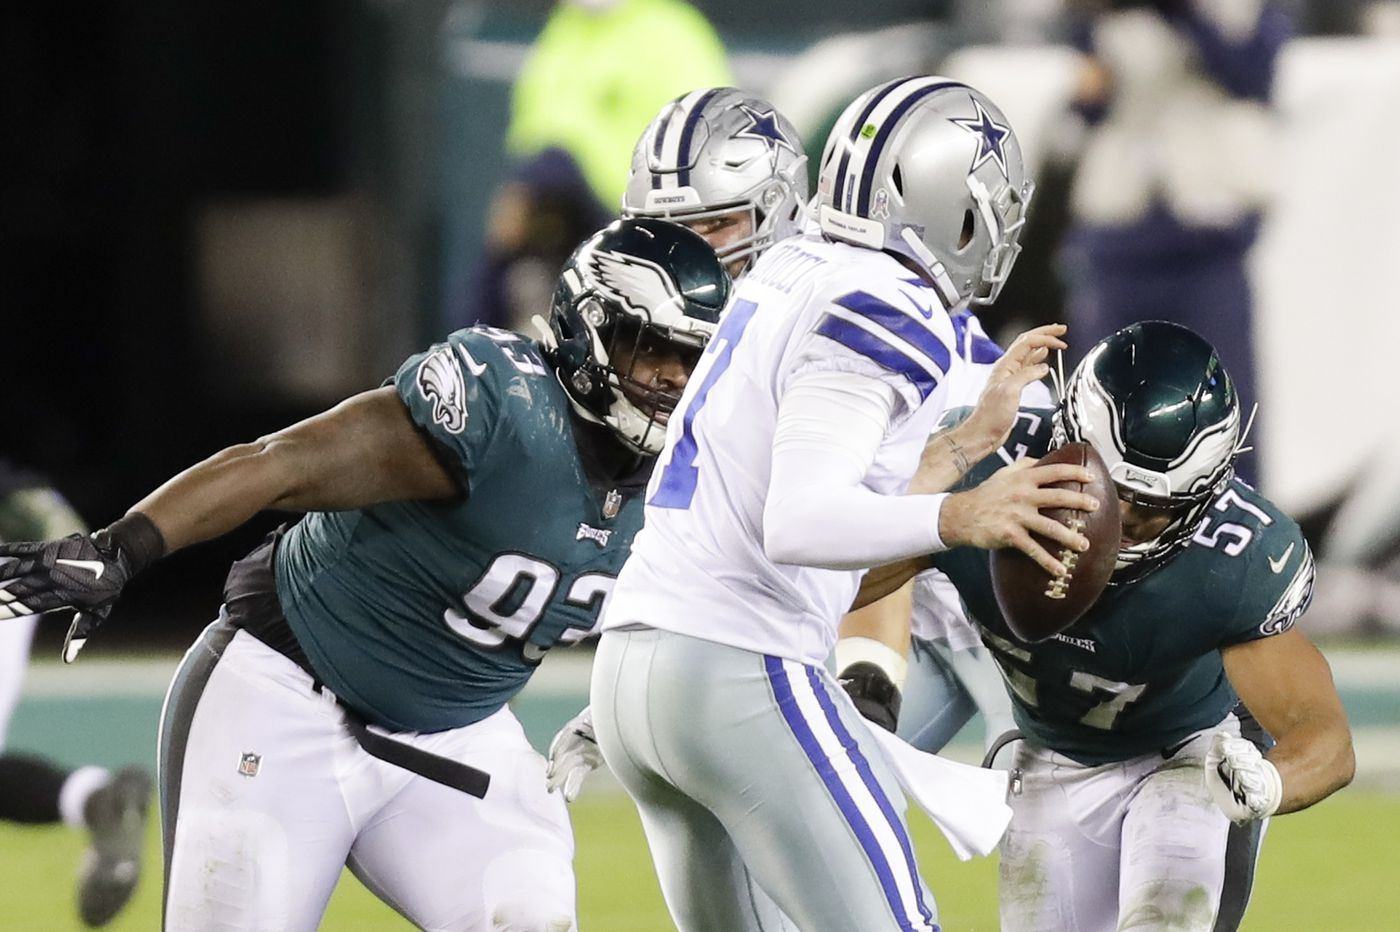 Eagles' remaining opponents present all sorts of challenges after bye week